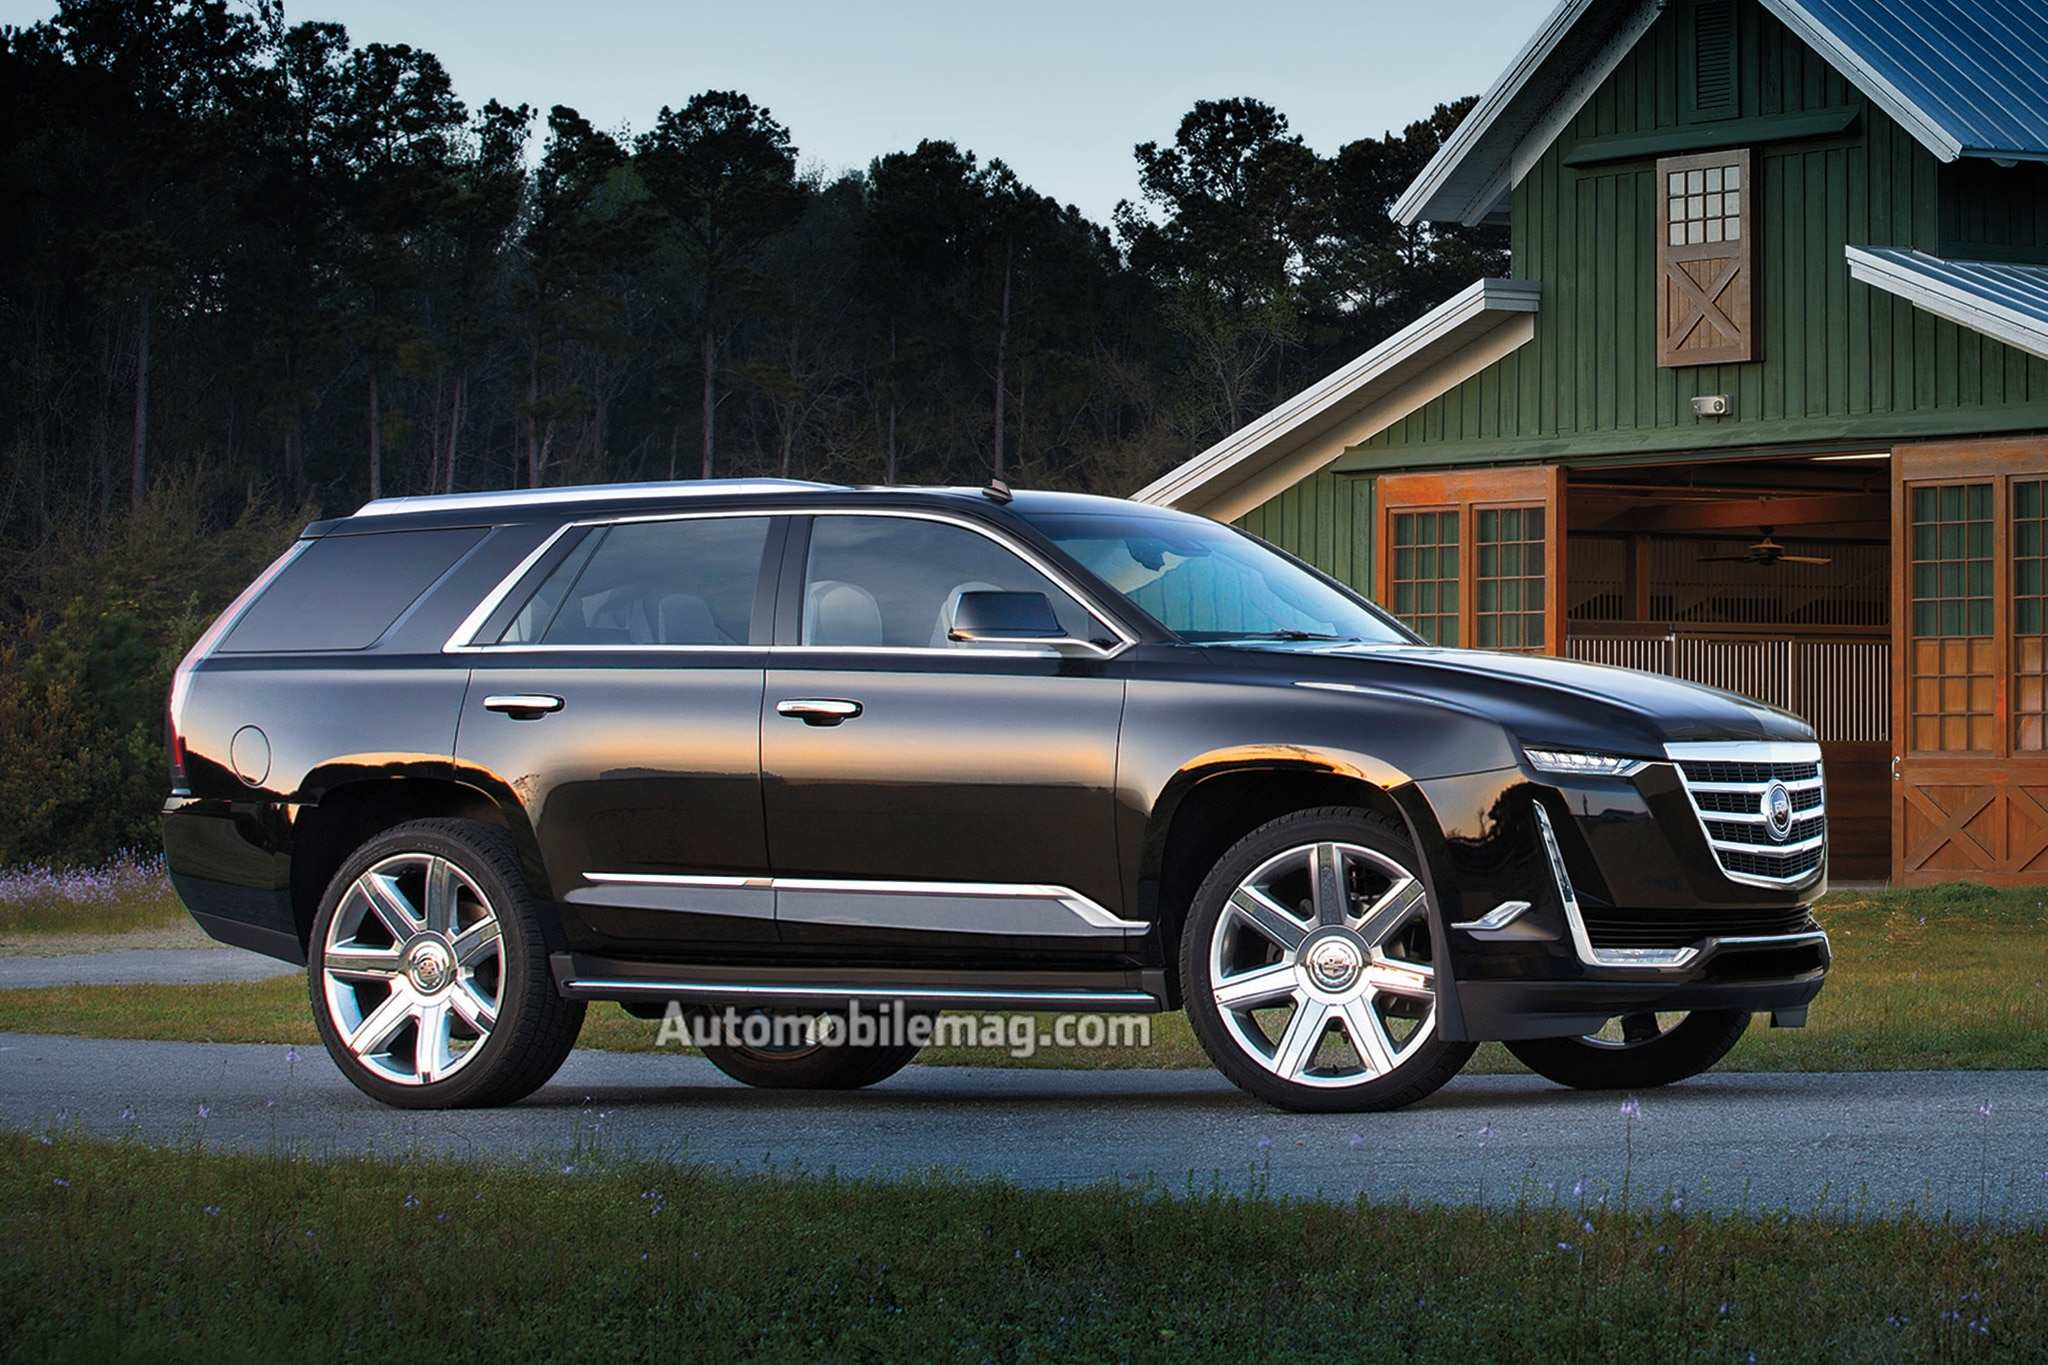 21 Best Review 2020 Cadillac Escalade Luxury Suv Overview for 2020 Cadillac Escalade Luxury Suv